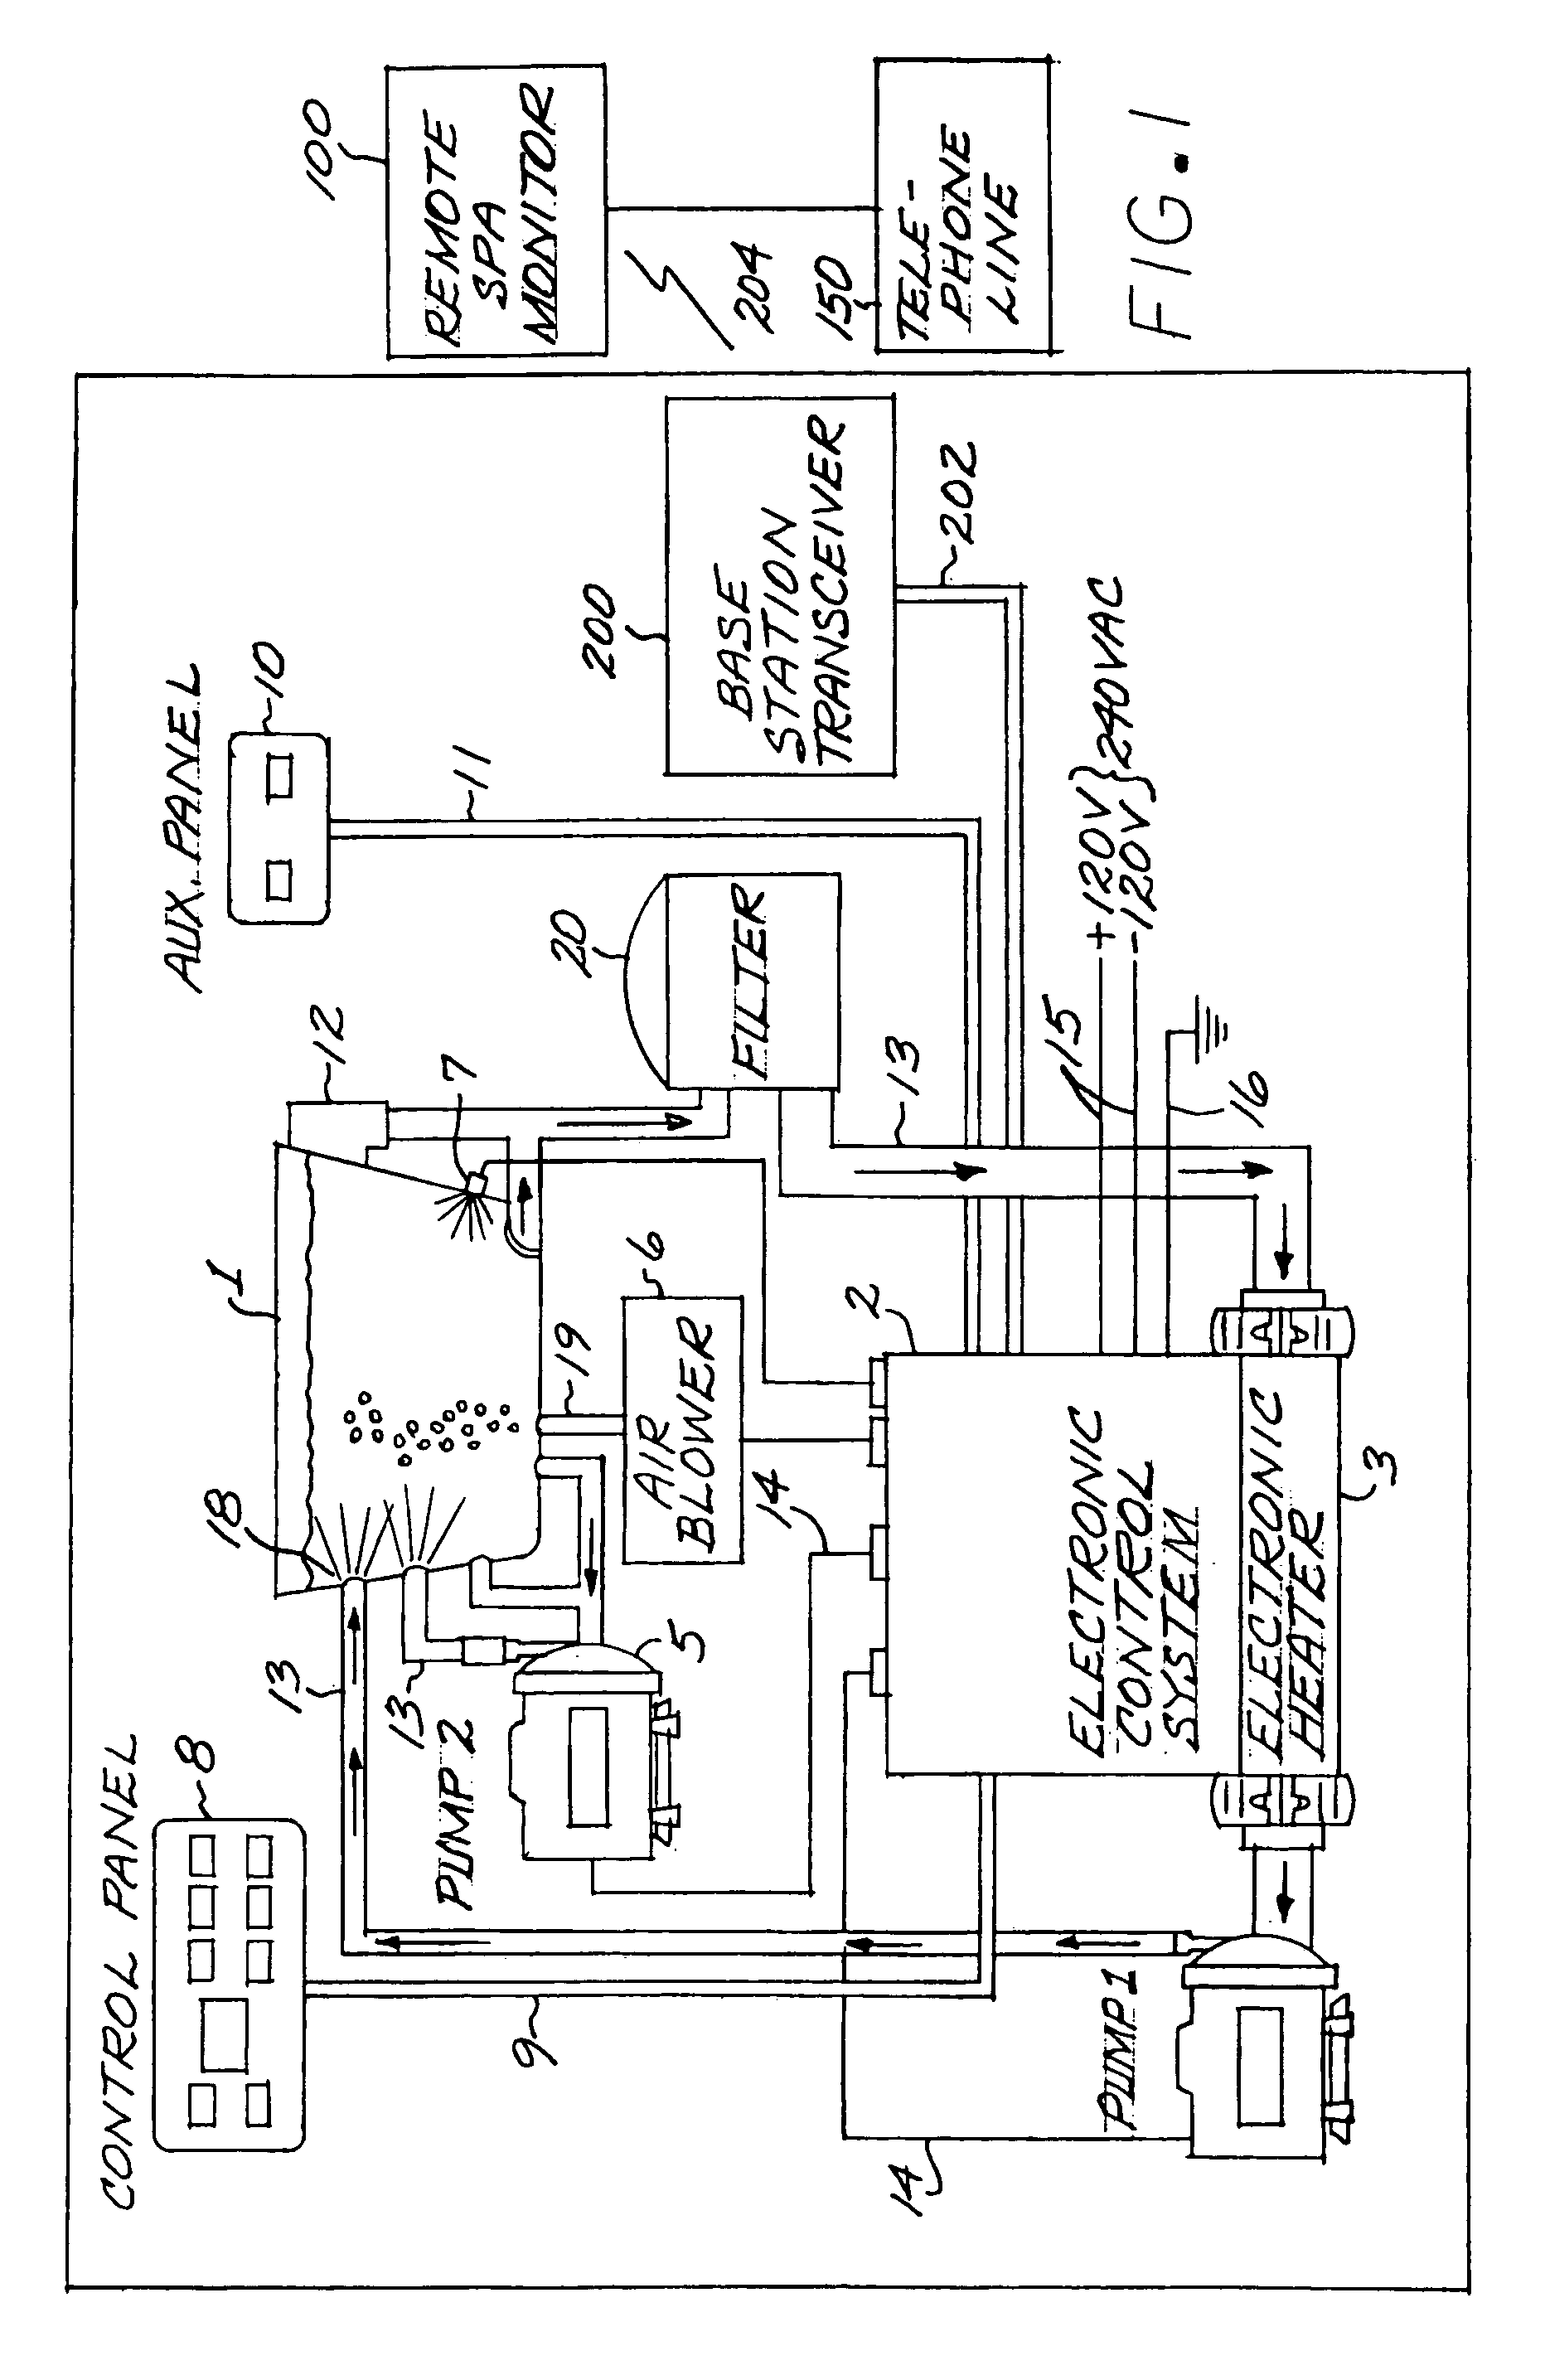 US07167087 20070123 D00001 patent us7167087 remote spa monitor google patents jandy spa side remote wiring diagram at aneh.co